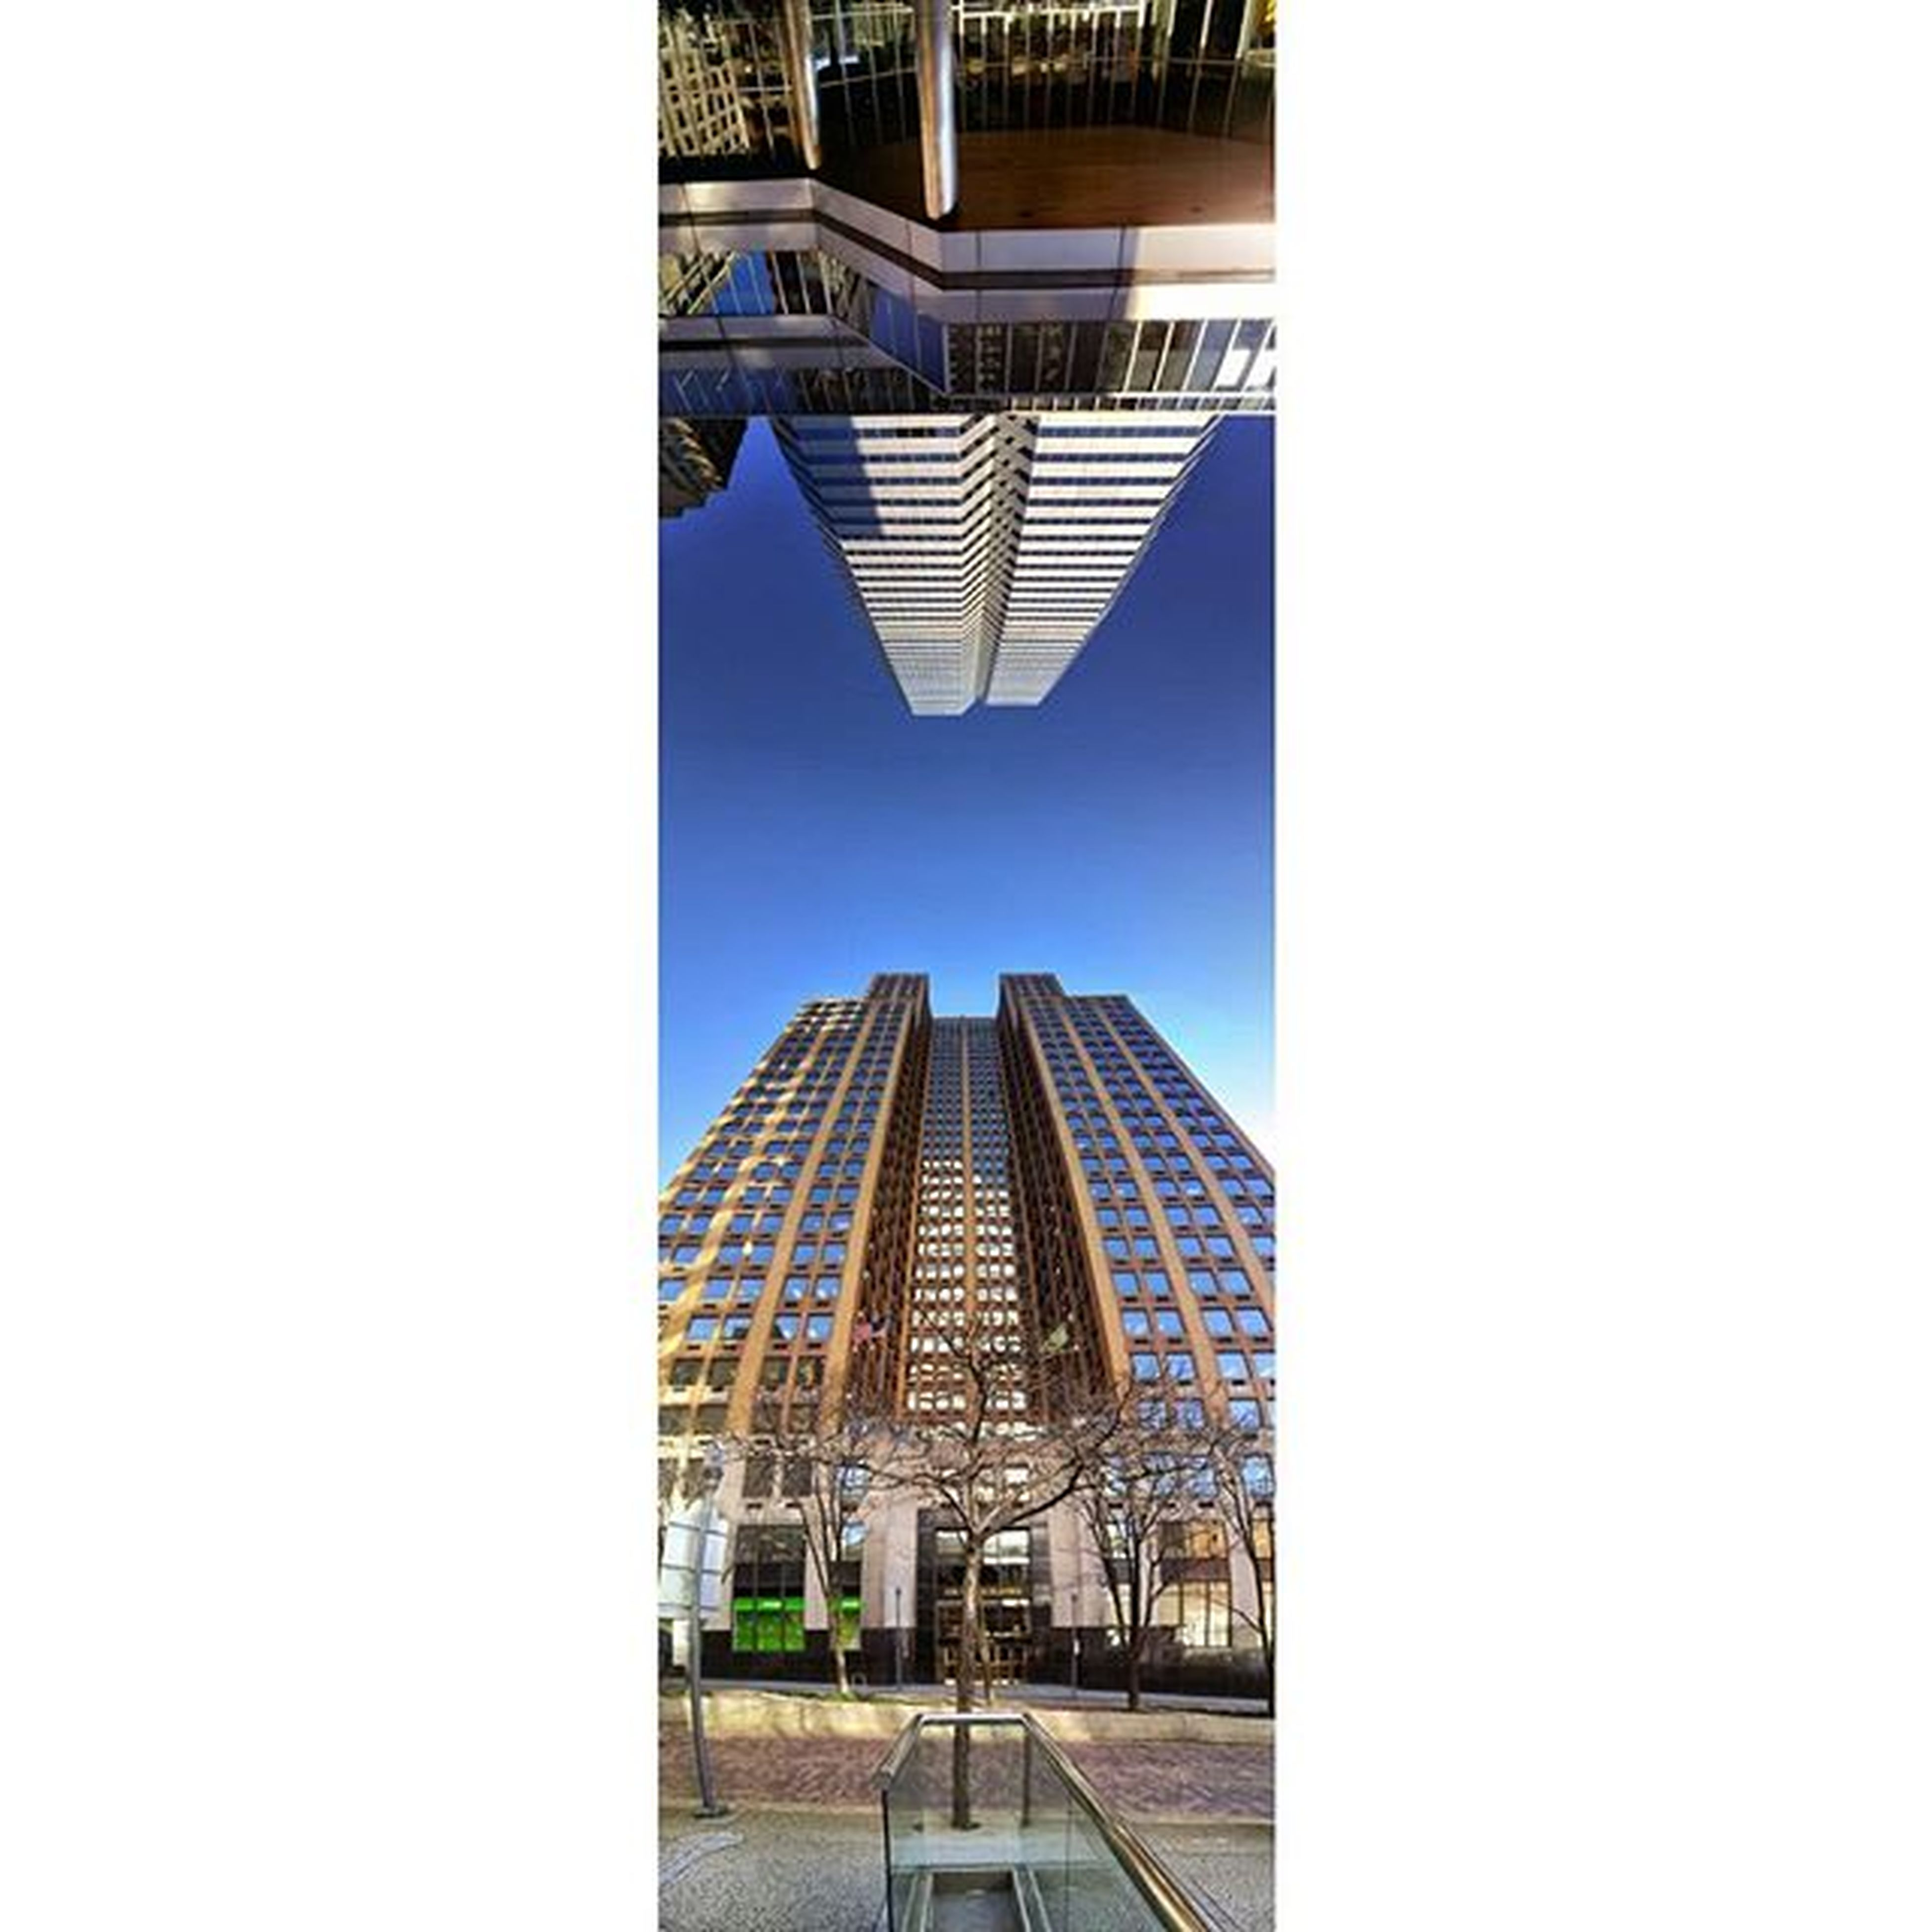 architecture, built structure, building exterior, modern, city, clear sky, office building, skyscraper, tower, tall - high, building, low angle view, city life, capital cities, famous place, travel destinations, glass - material, day, architectural feature, copy space